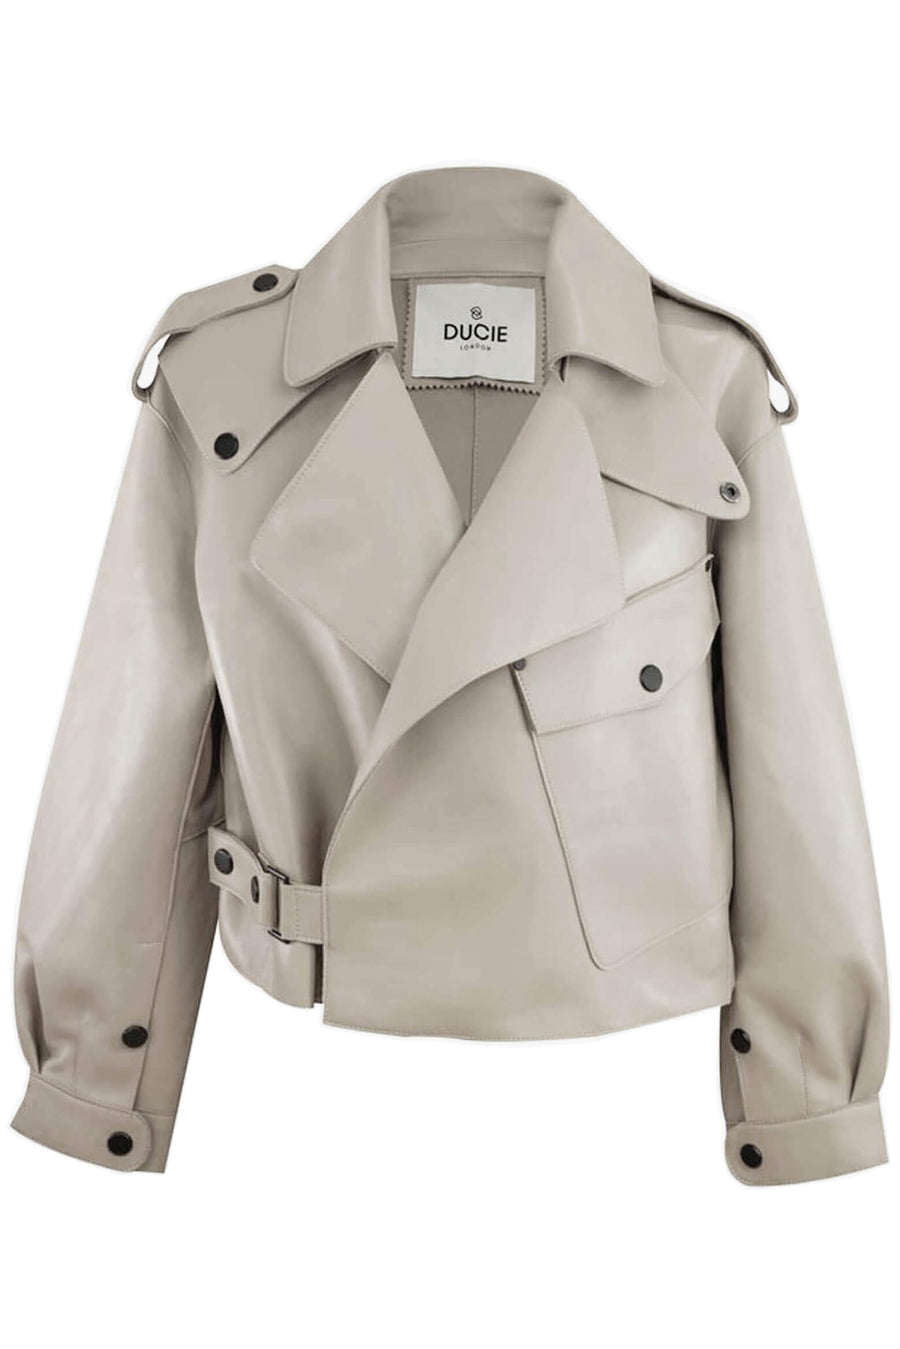 Ducie London Simi Crop Leather Jacket in Stone from The New Trend